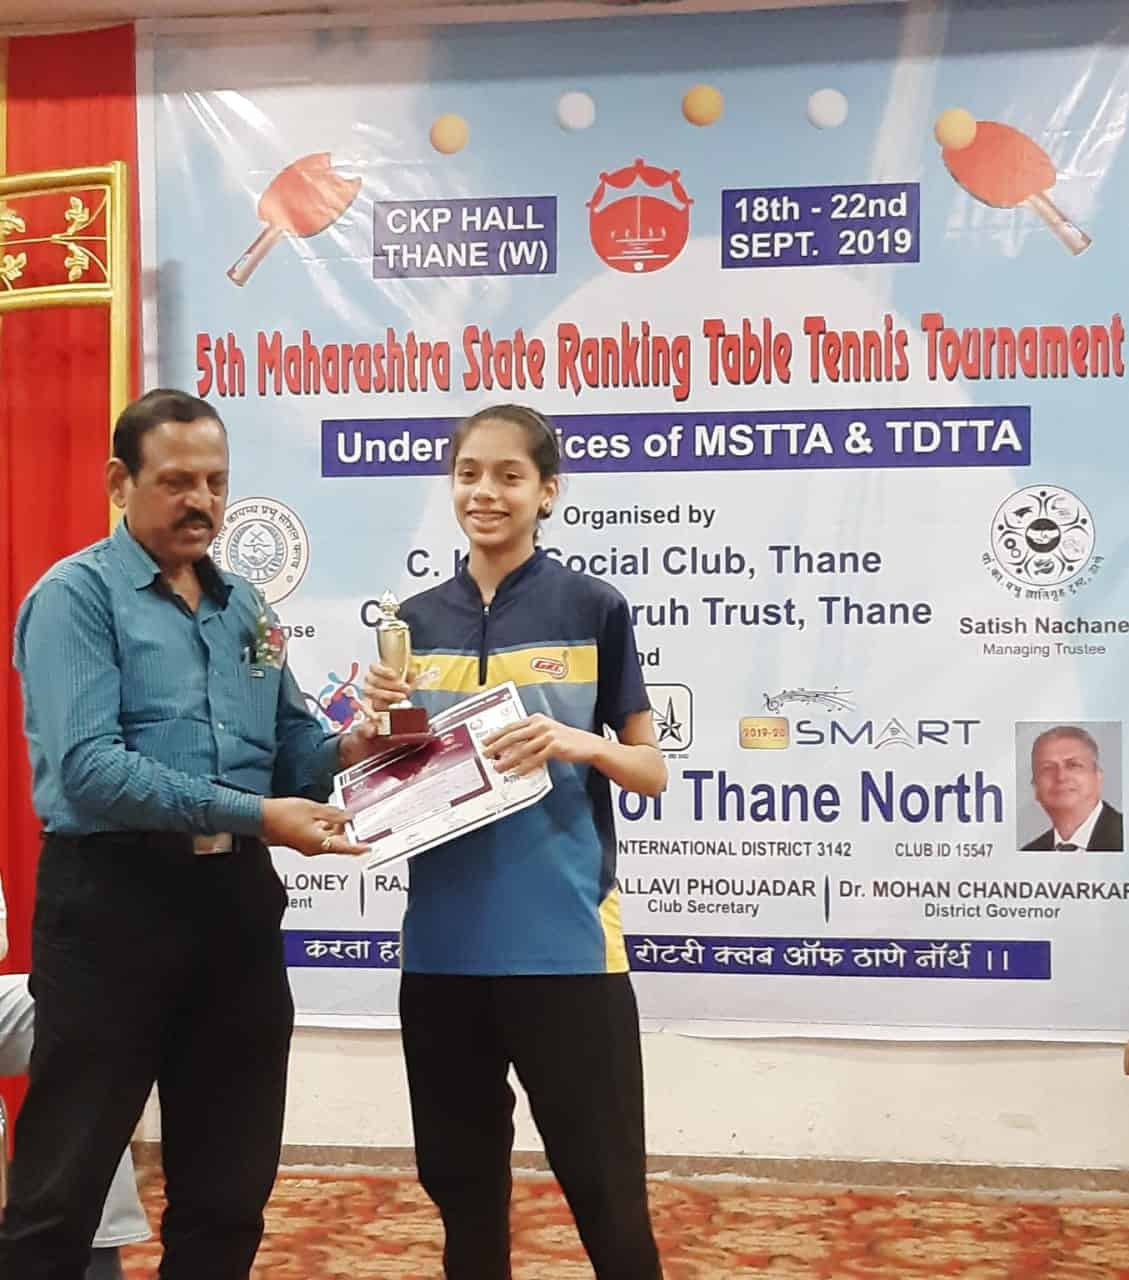 Creditable achievement of Ananya Chande of AVM Bandra West in the State Level Table Tennis Tournament!!